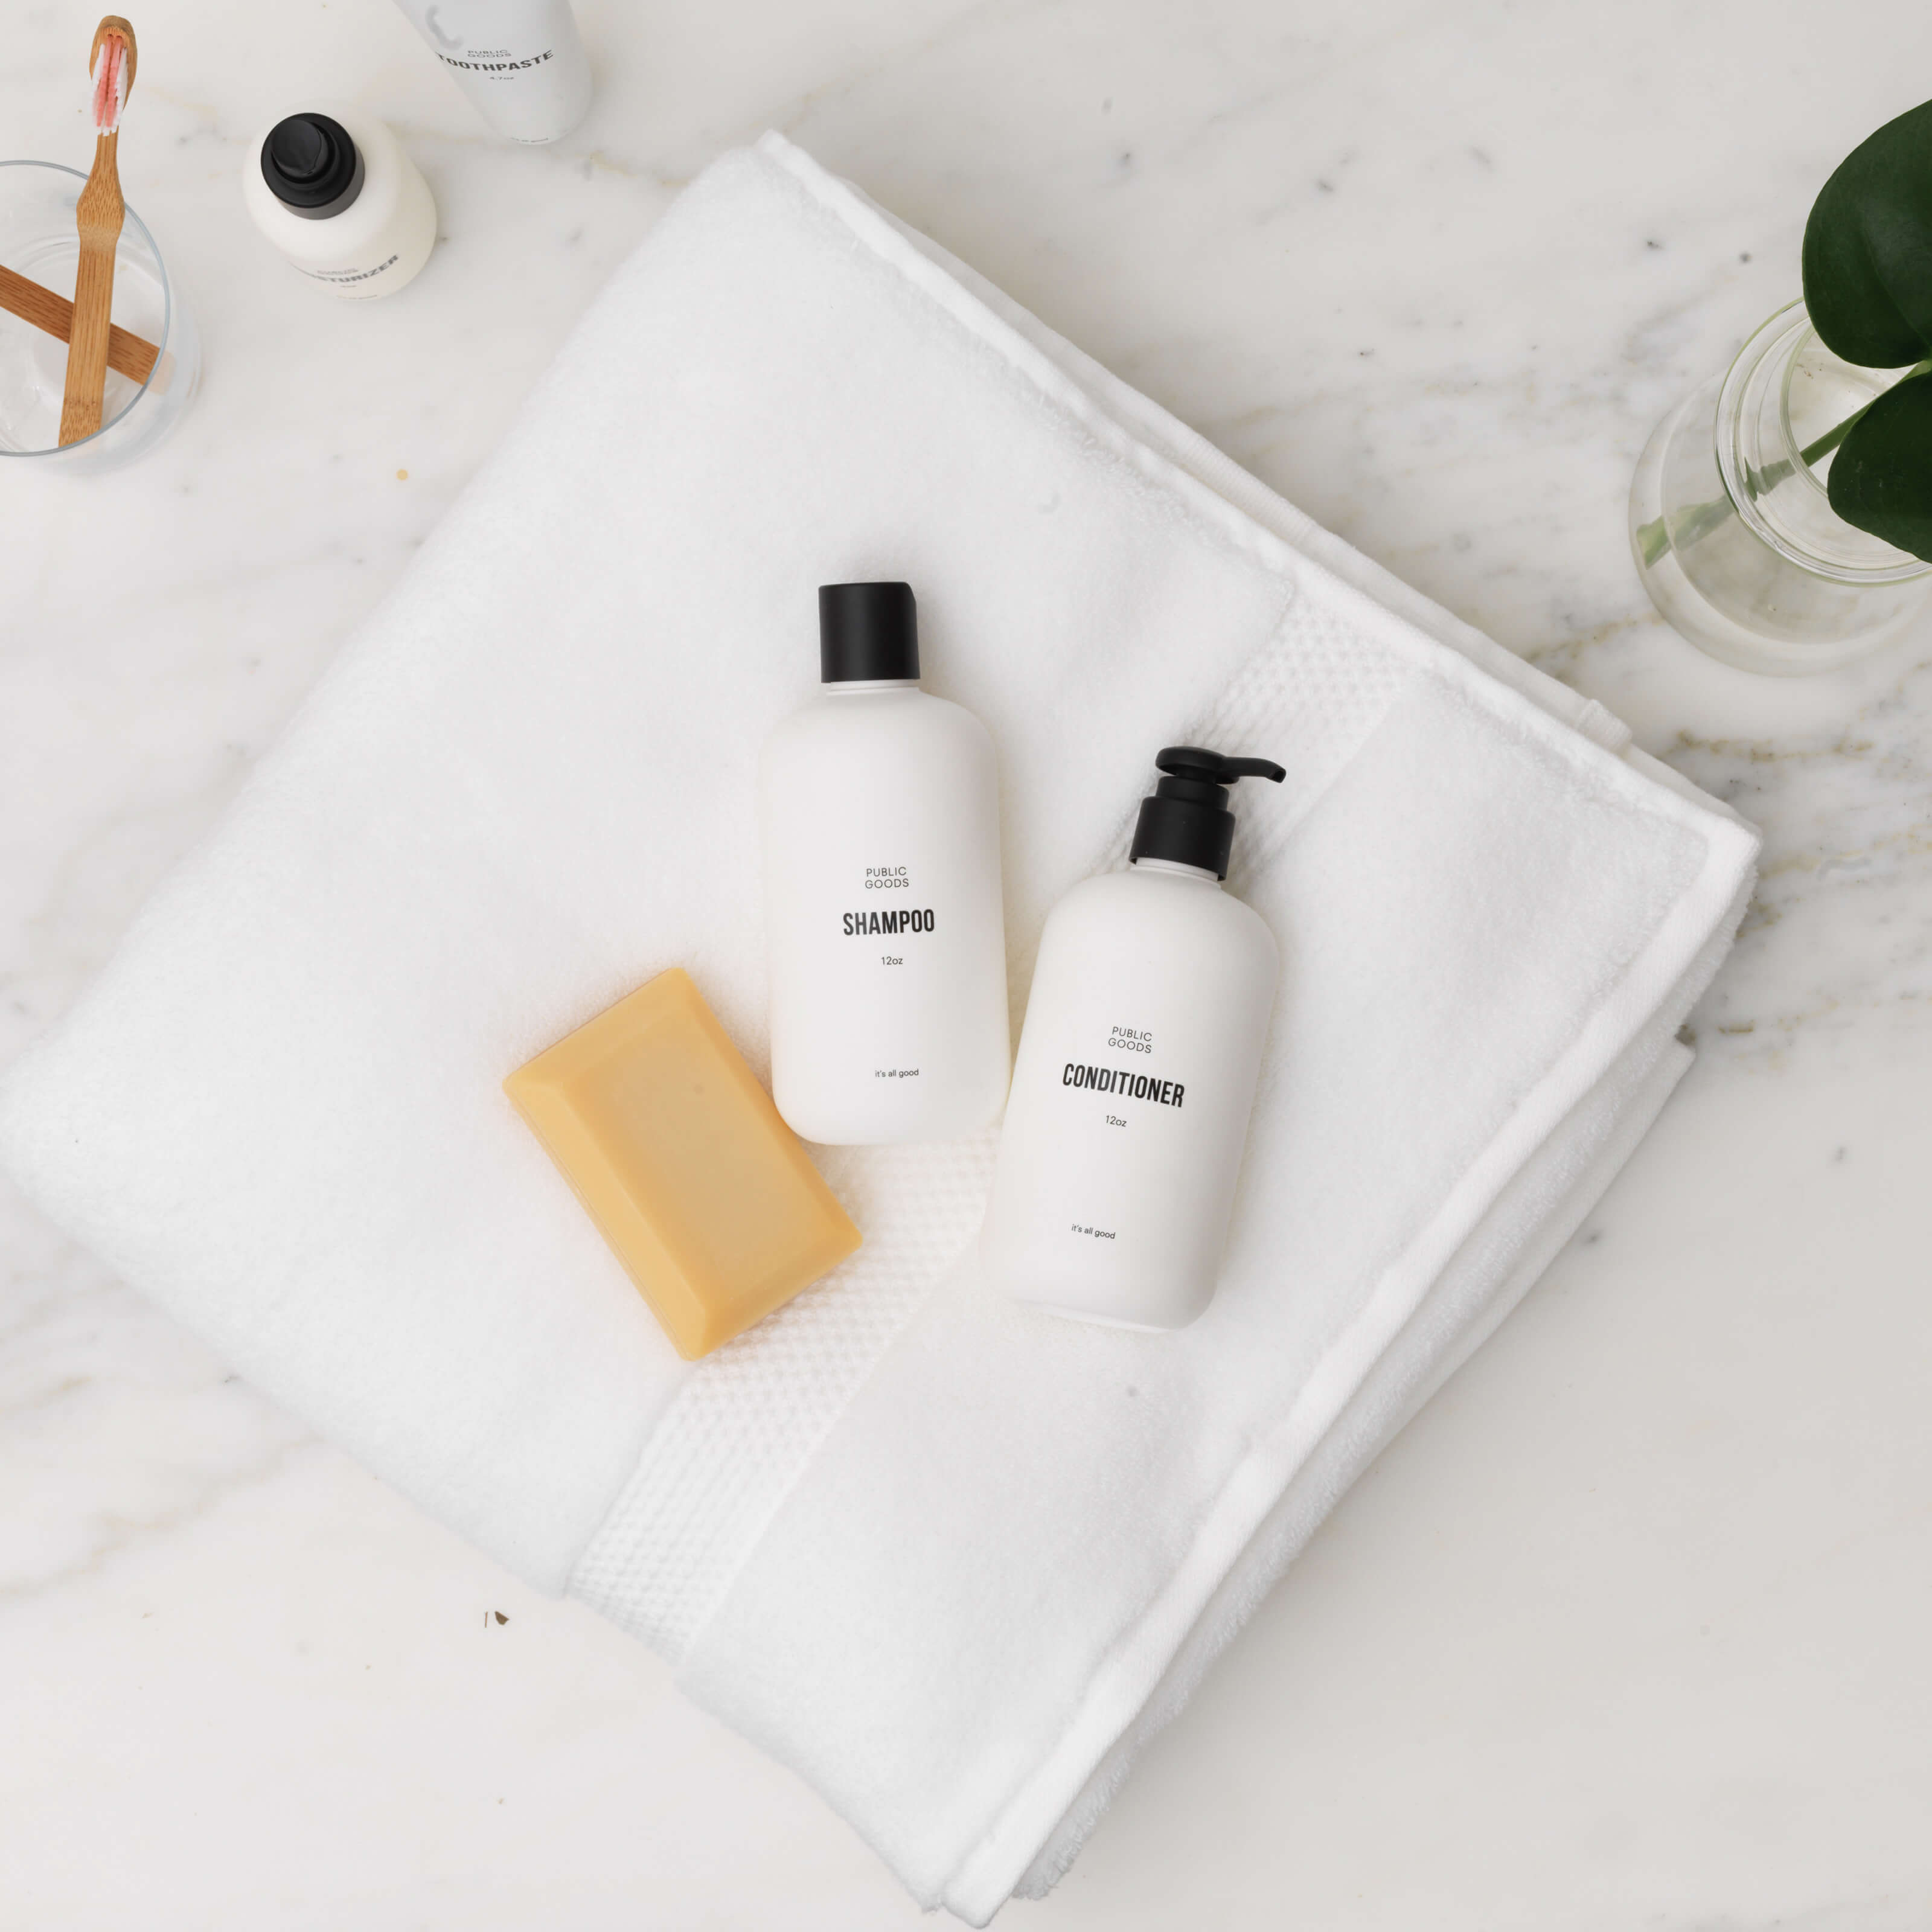 public goods personal care products, towel, bathroom counter